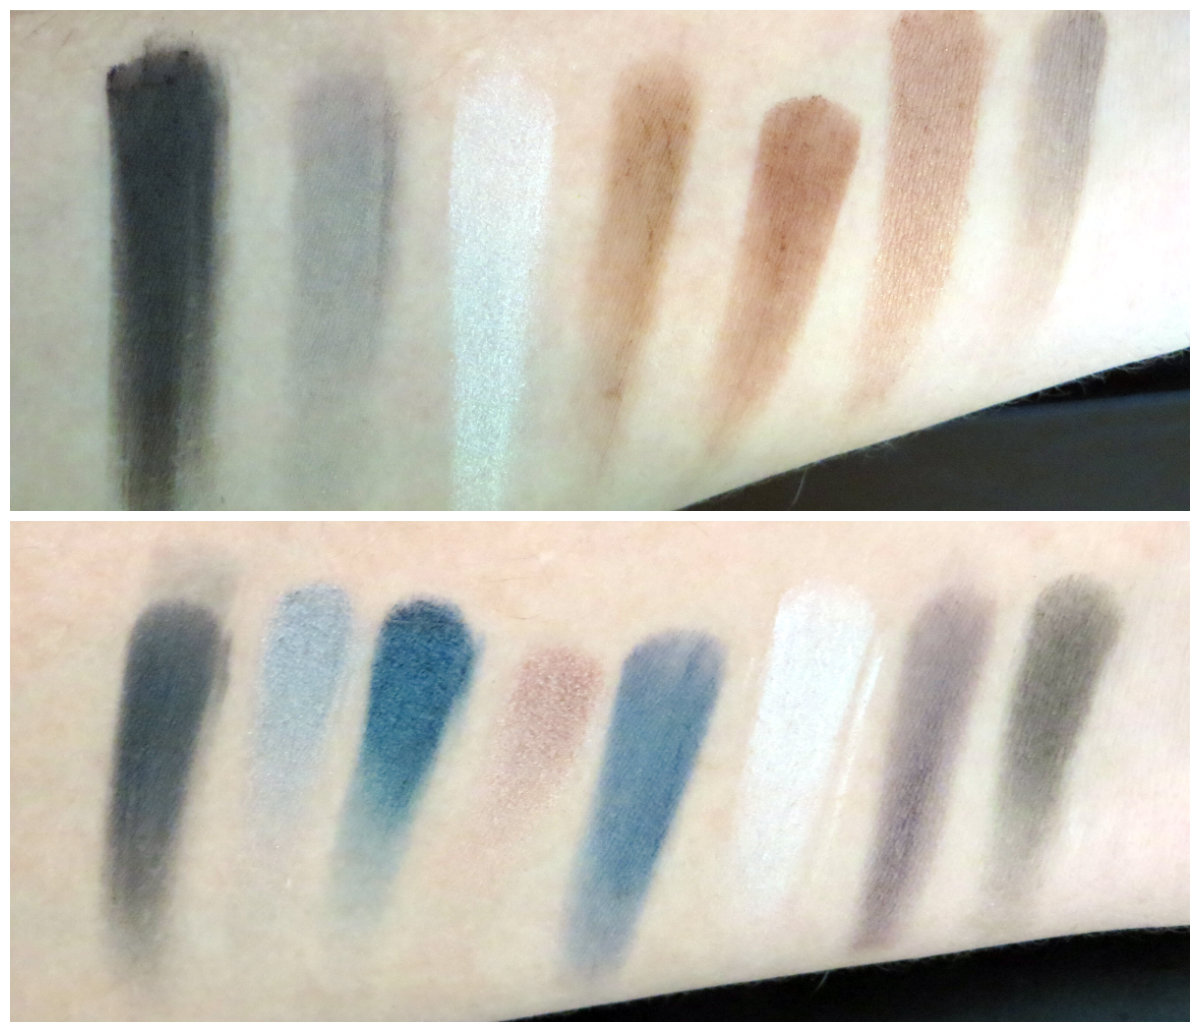 L.A. Colors 12 Color Eyeshadow Palette Swatches